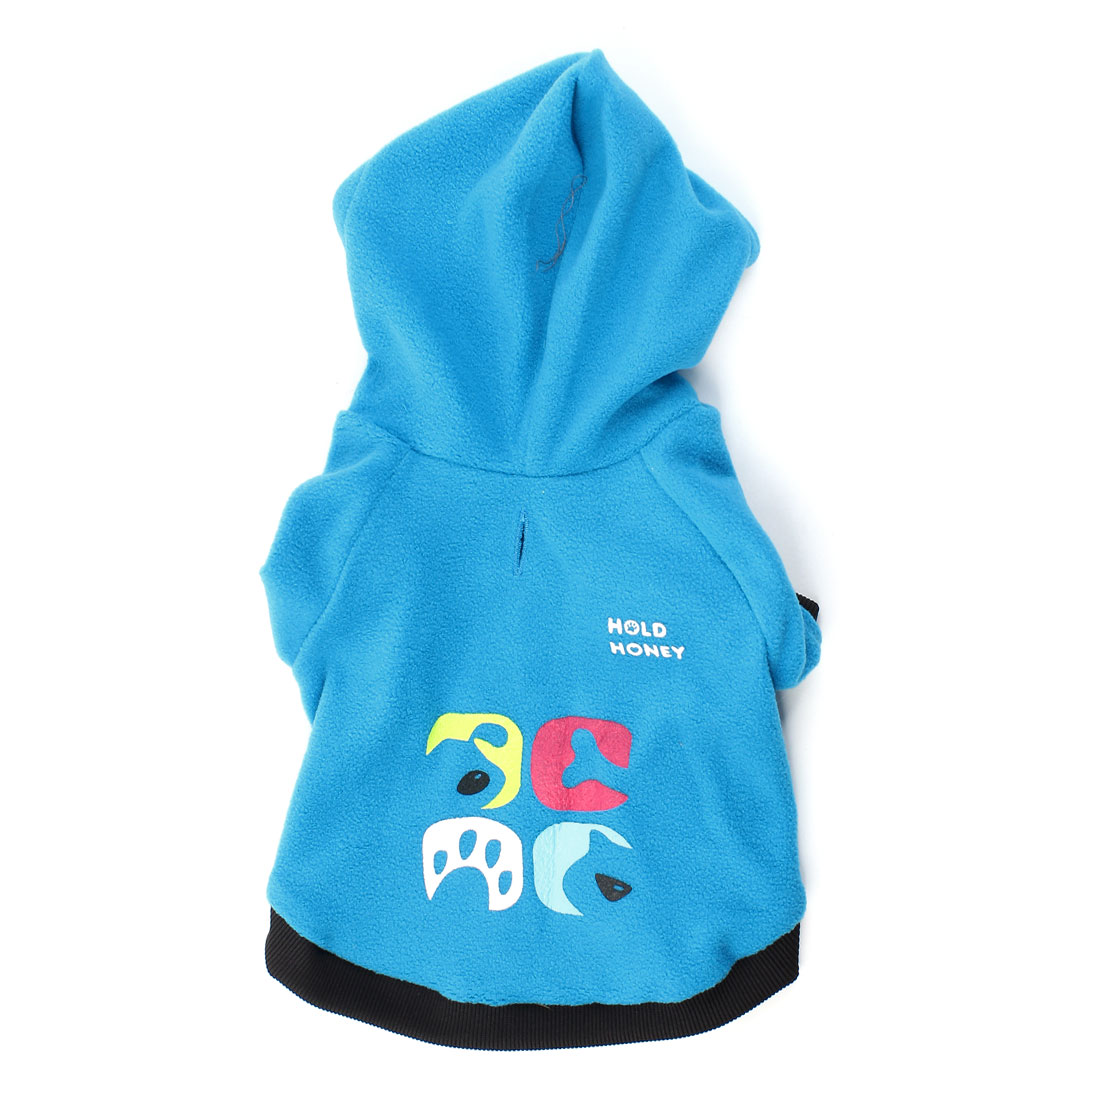 Winter Warm Raglan Sleeve Pet Dog Puppy Coat Clothing Blue Size M